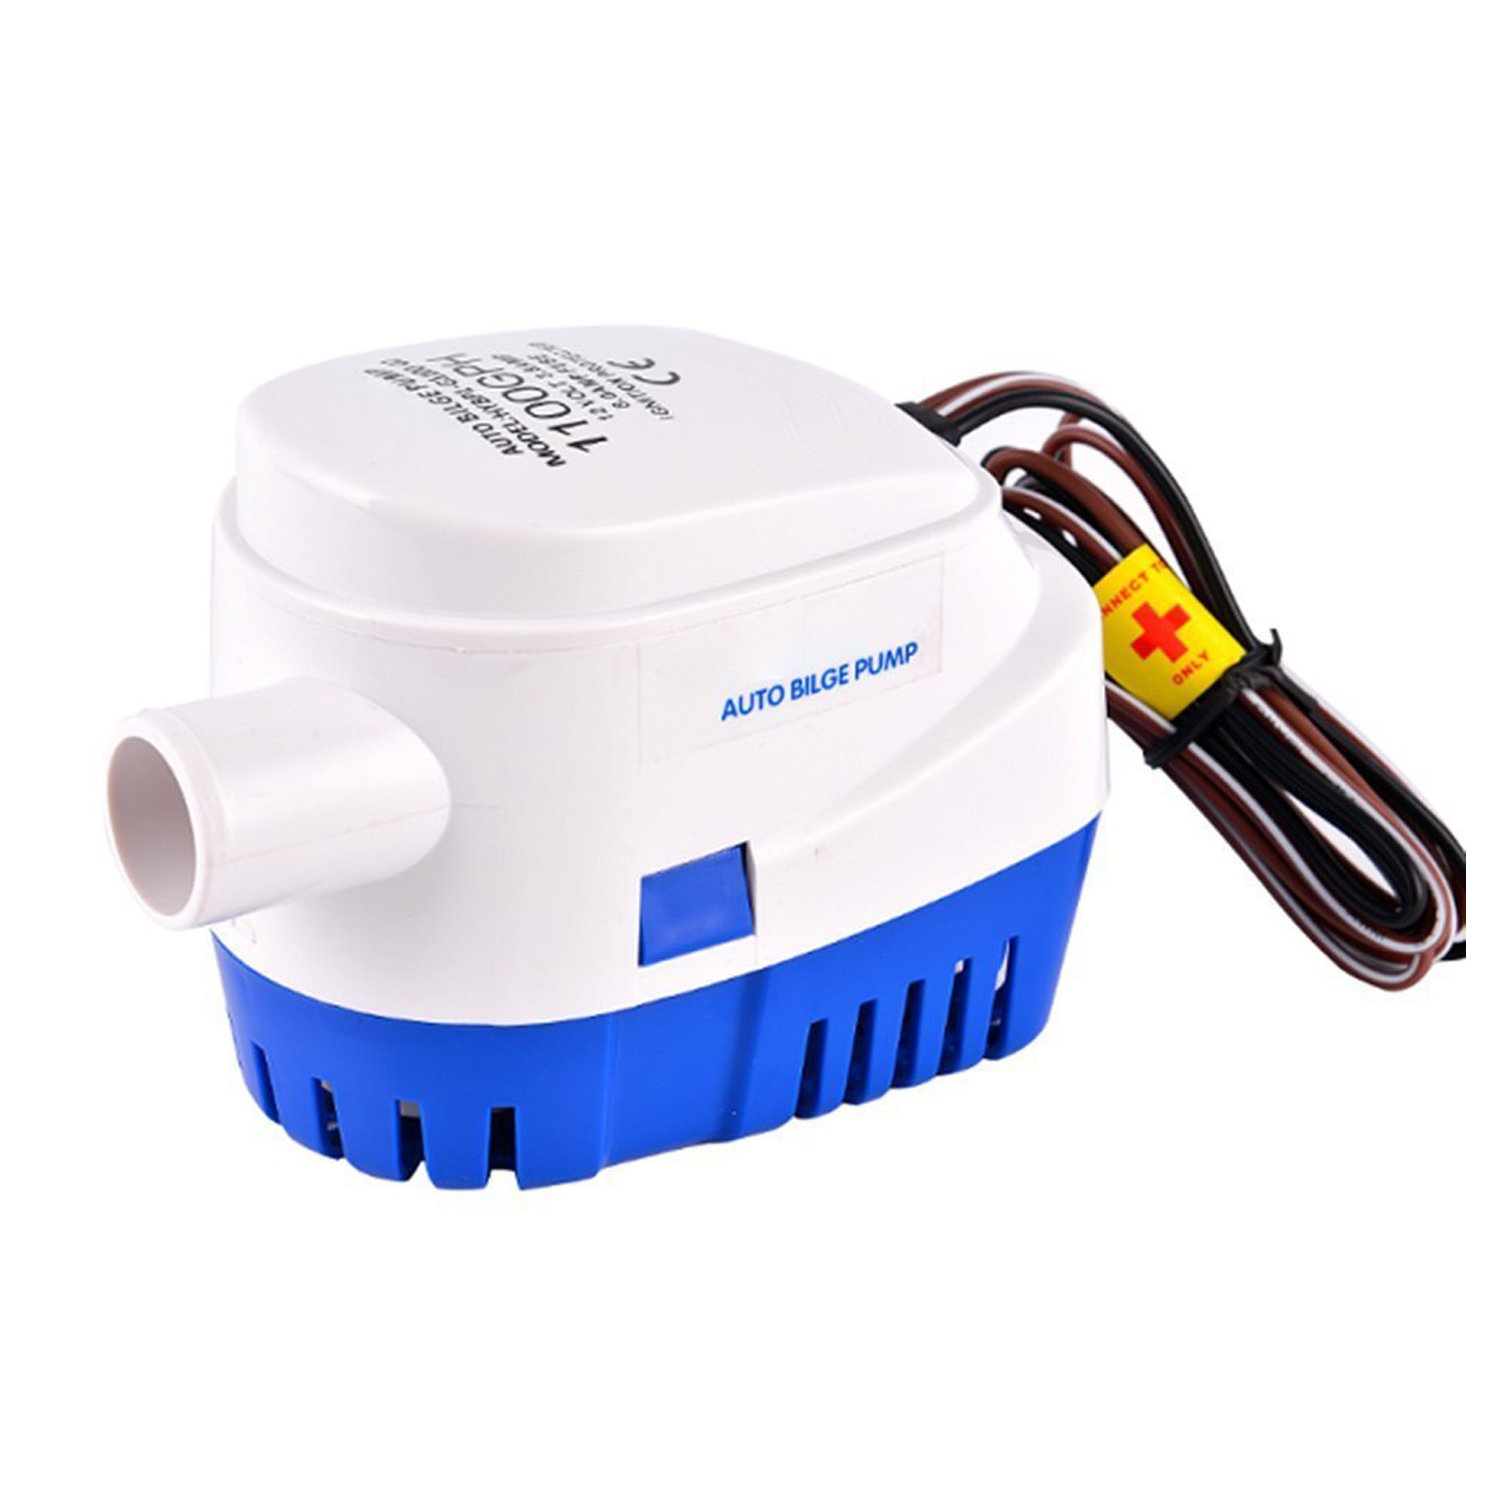 IUMÉ Boat Bilge Water Pump,Generic Automatic Submersible 12v 1100gph DC All-in-one Marine Bilge Auto Yacht with Float Switch Current 3.8A White & Blue